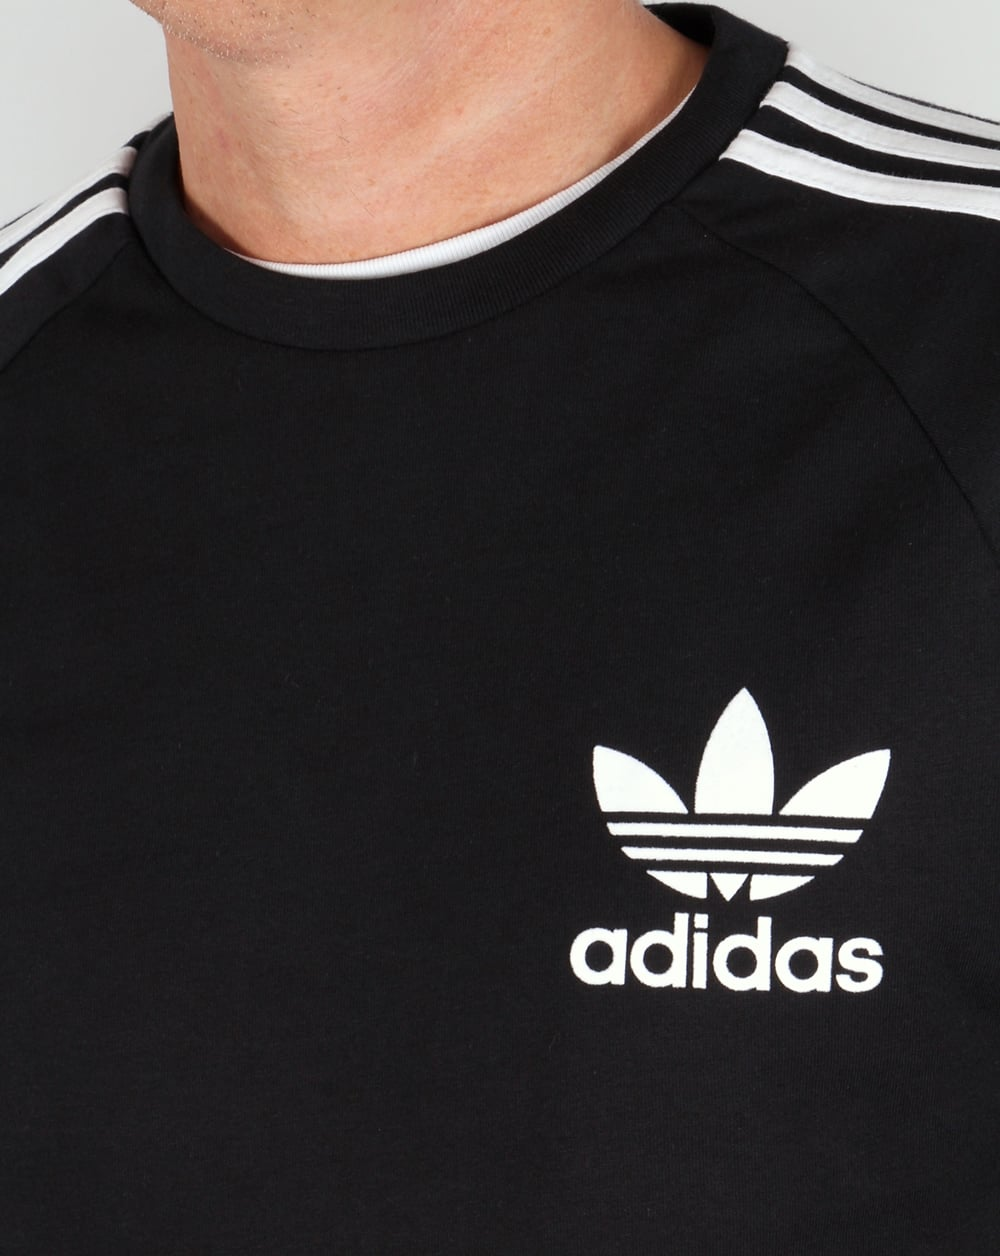 Shirts › Adidas Originals › Adidas Originals Long Sleeve T Shirt